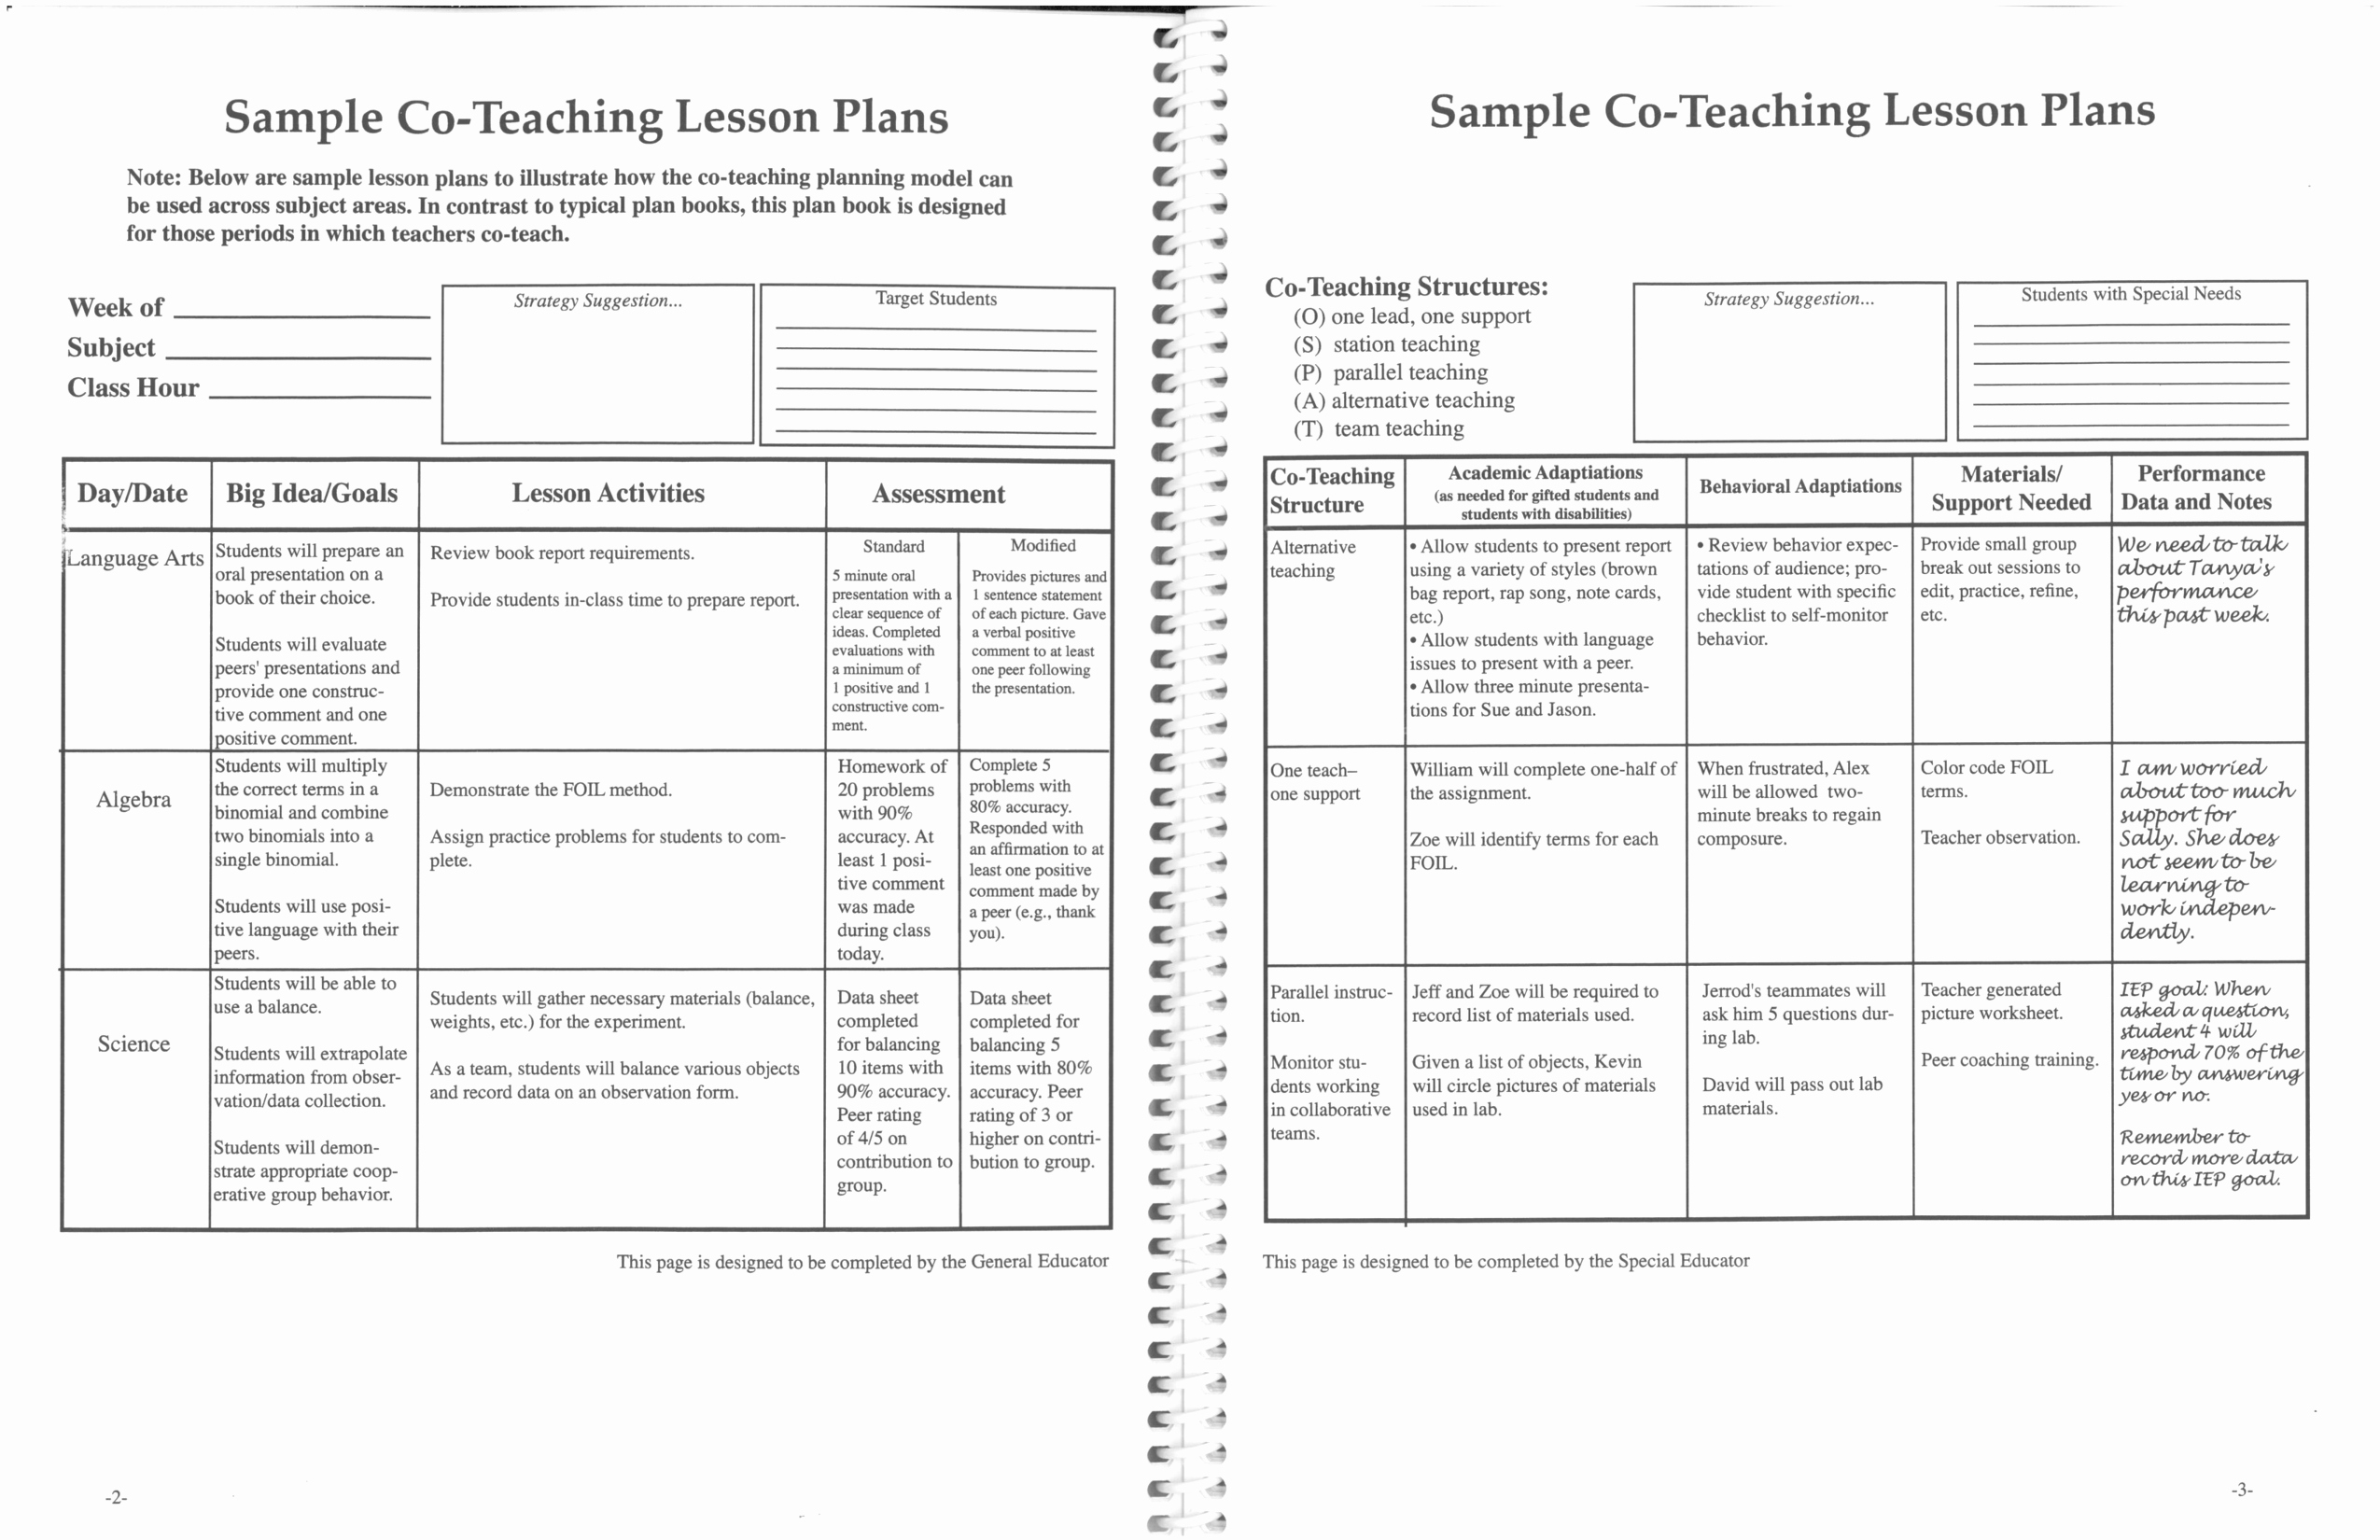 Texas Lesson Plans Template Unique Printable Co Teaching Lesson Plans 2 with Teaching Lesson